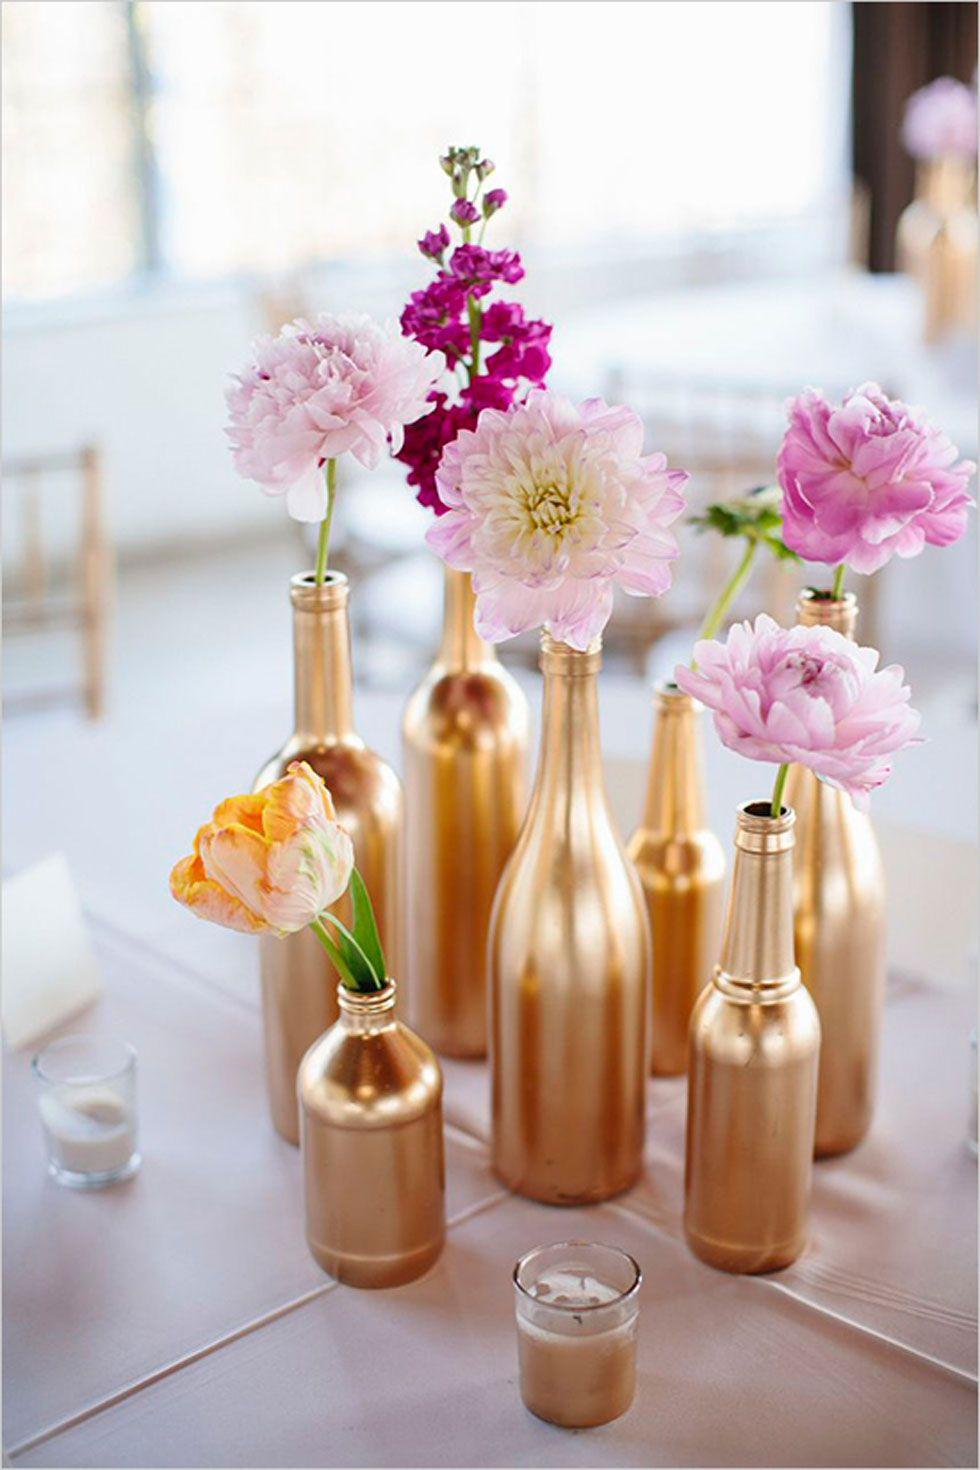 861da559f19 These spray-painted glass bottles look gorgeous as simple vases for  individual blossoms.